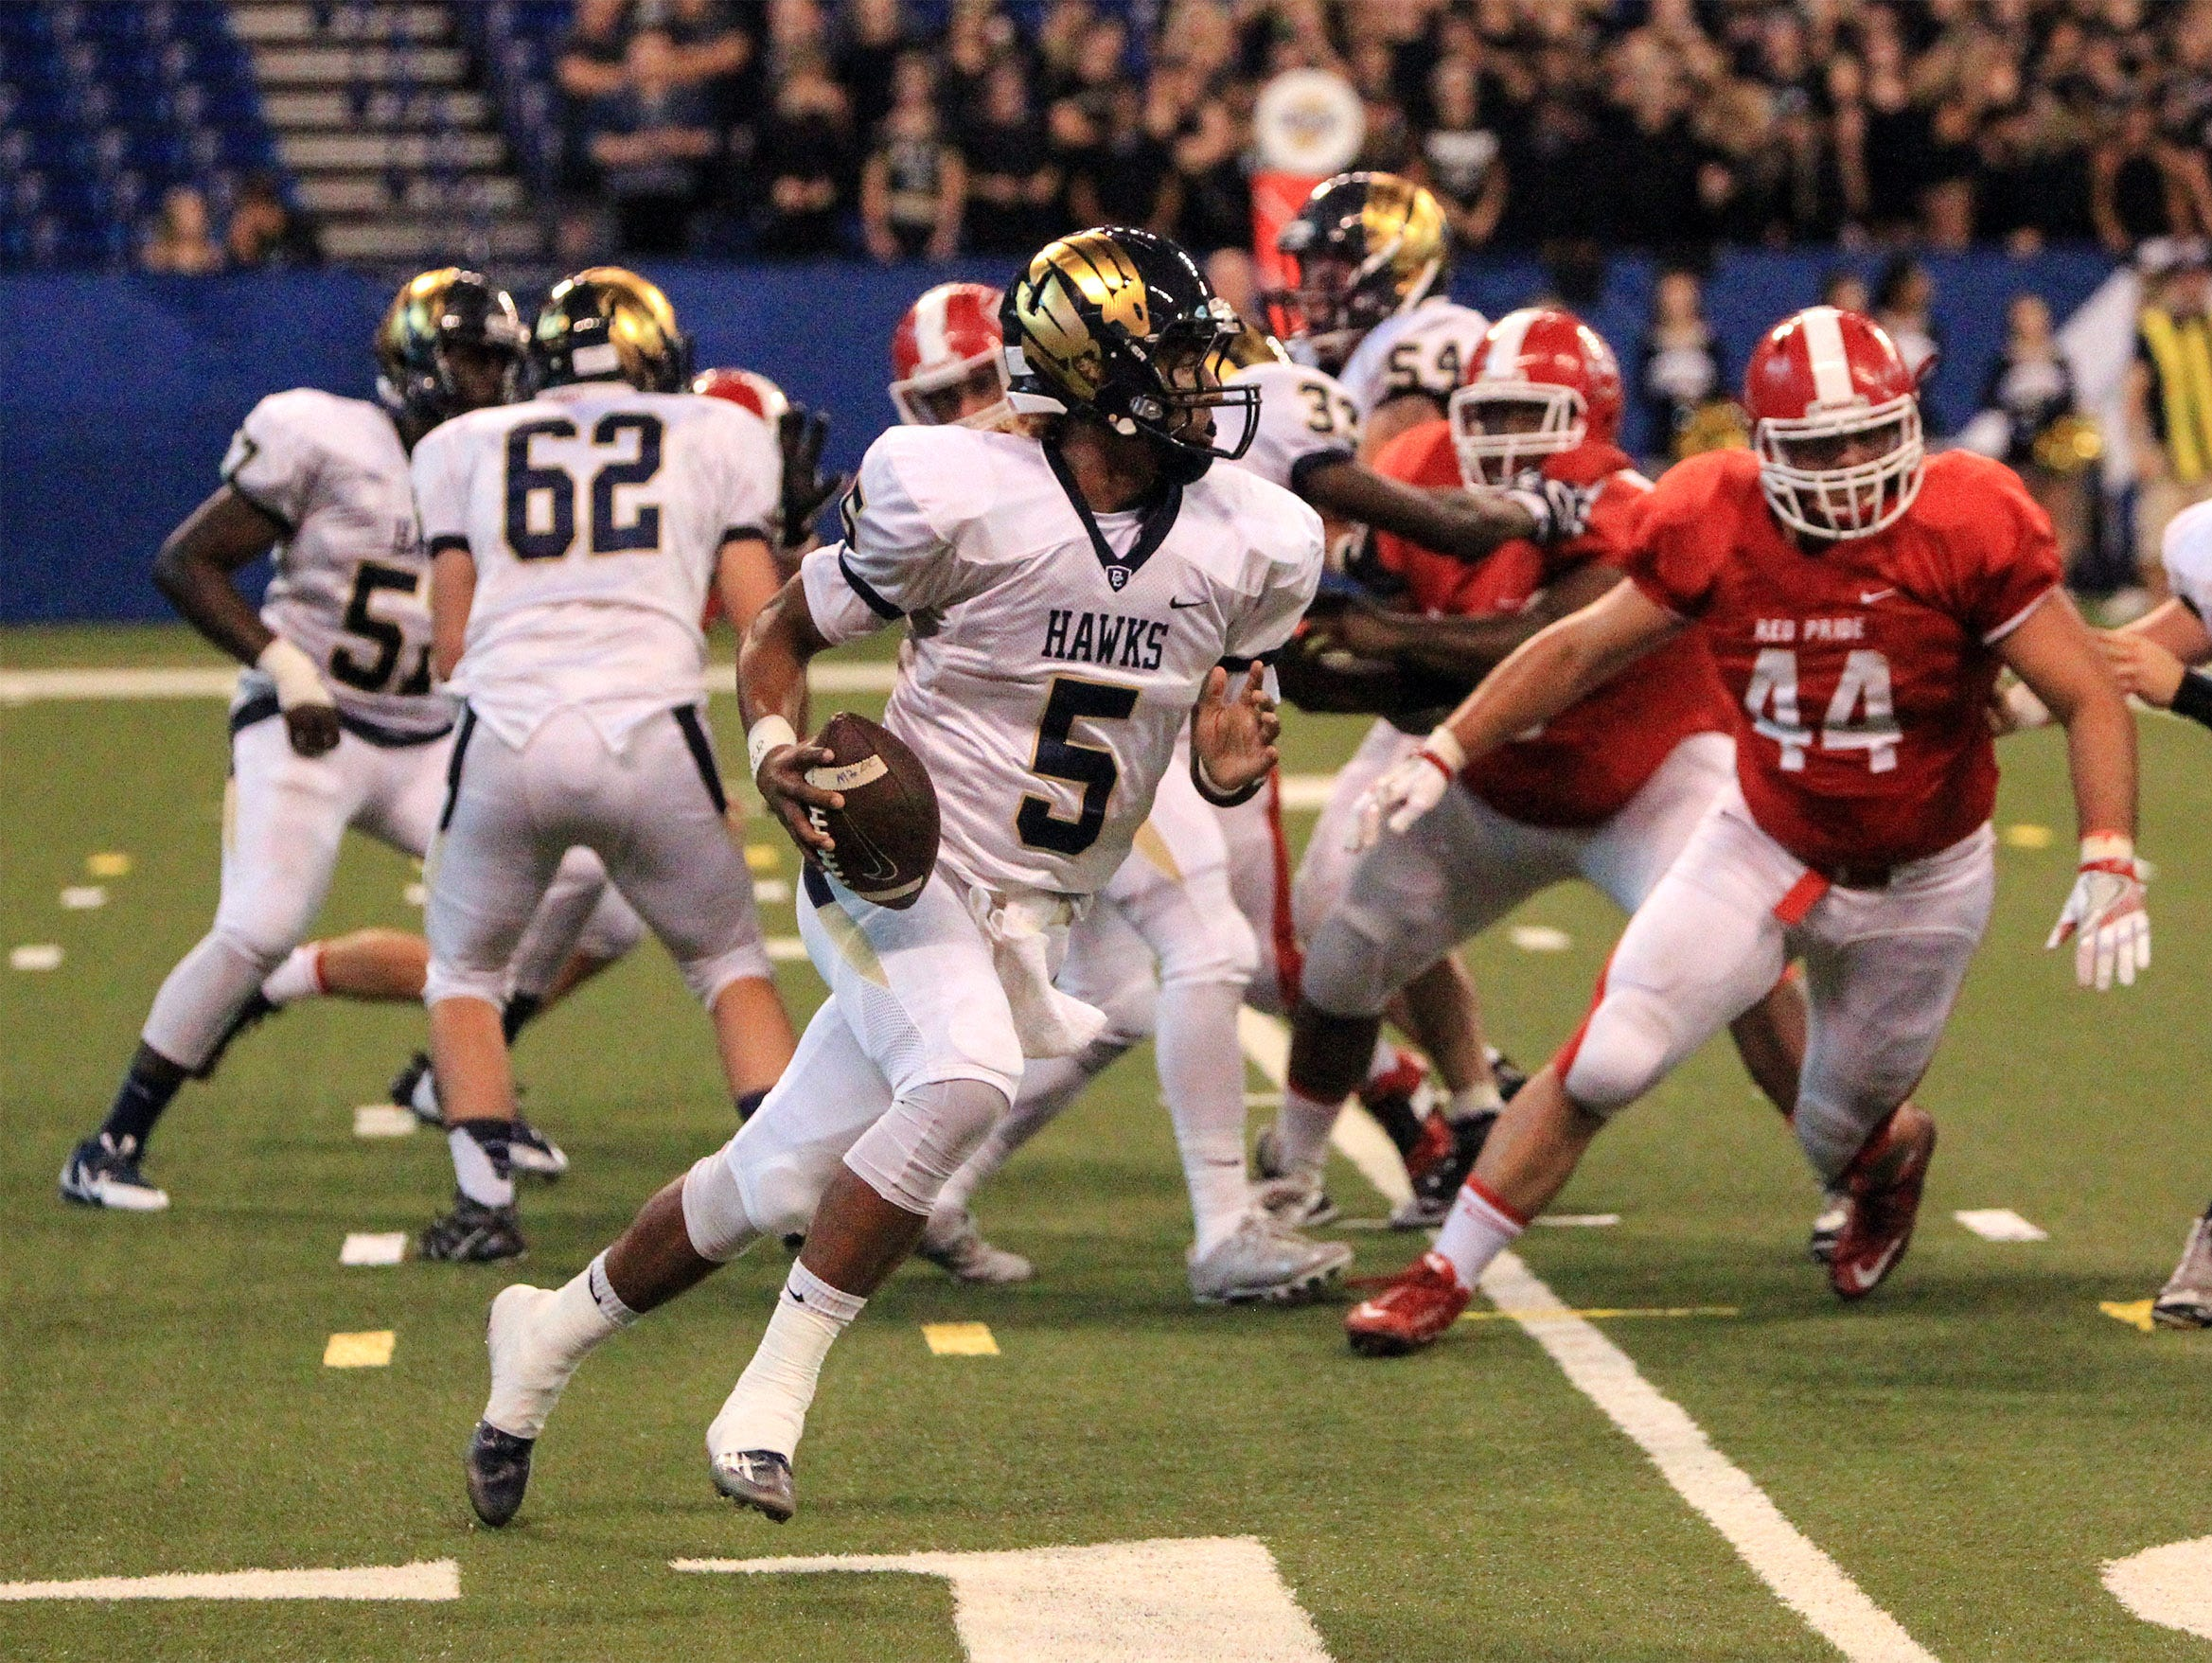 Decatur Central quarterback Bryce Jefferson breaks away from the Plainfield Quakers defense at Lucas Oil Stadium. He threw for a touchdown and ran for one Friday, Sept. 23, 2016.